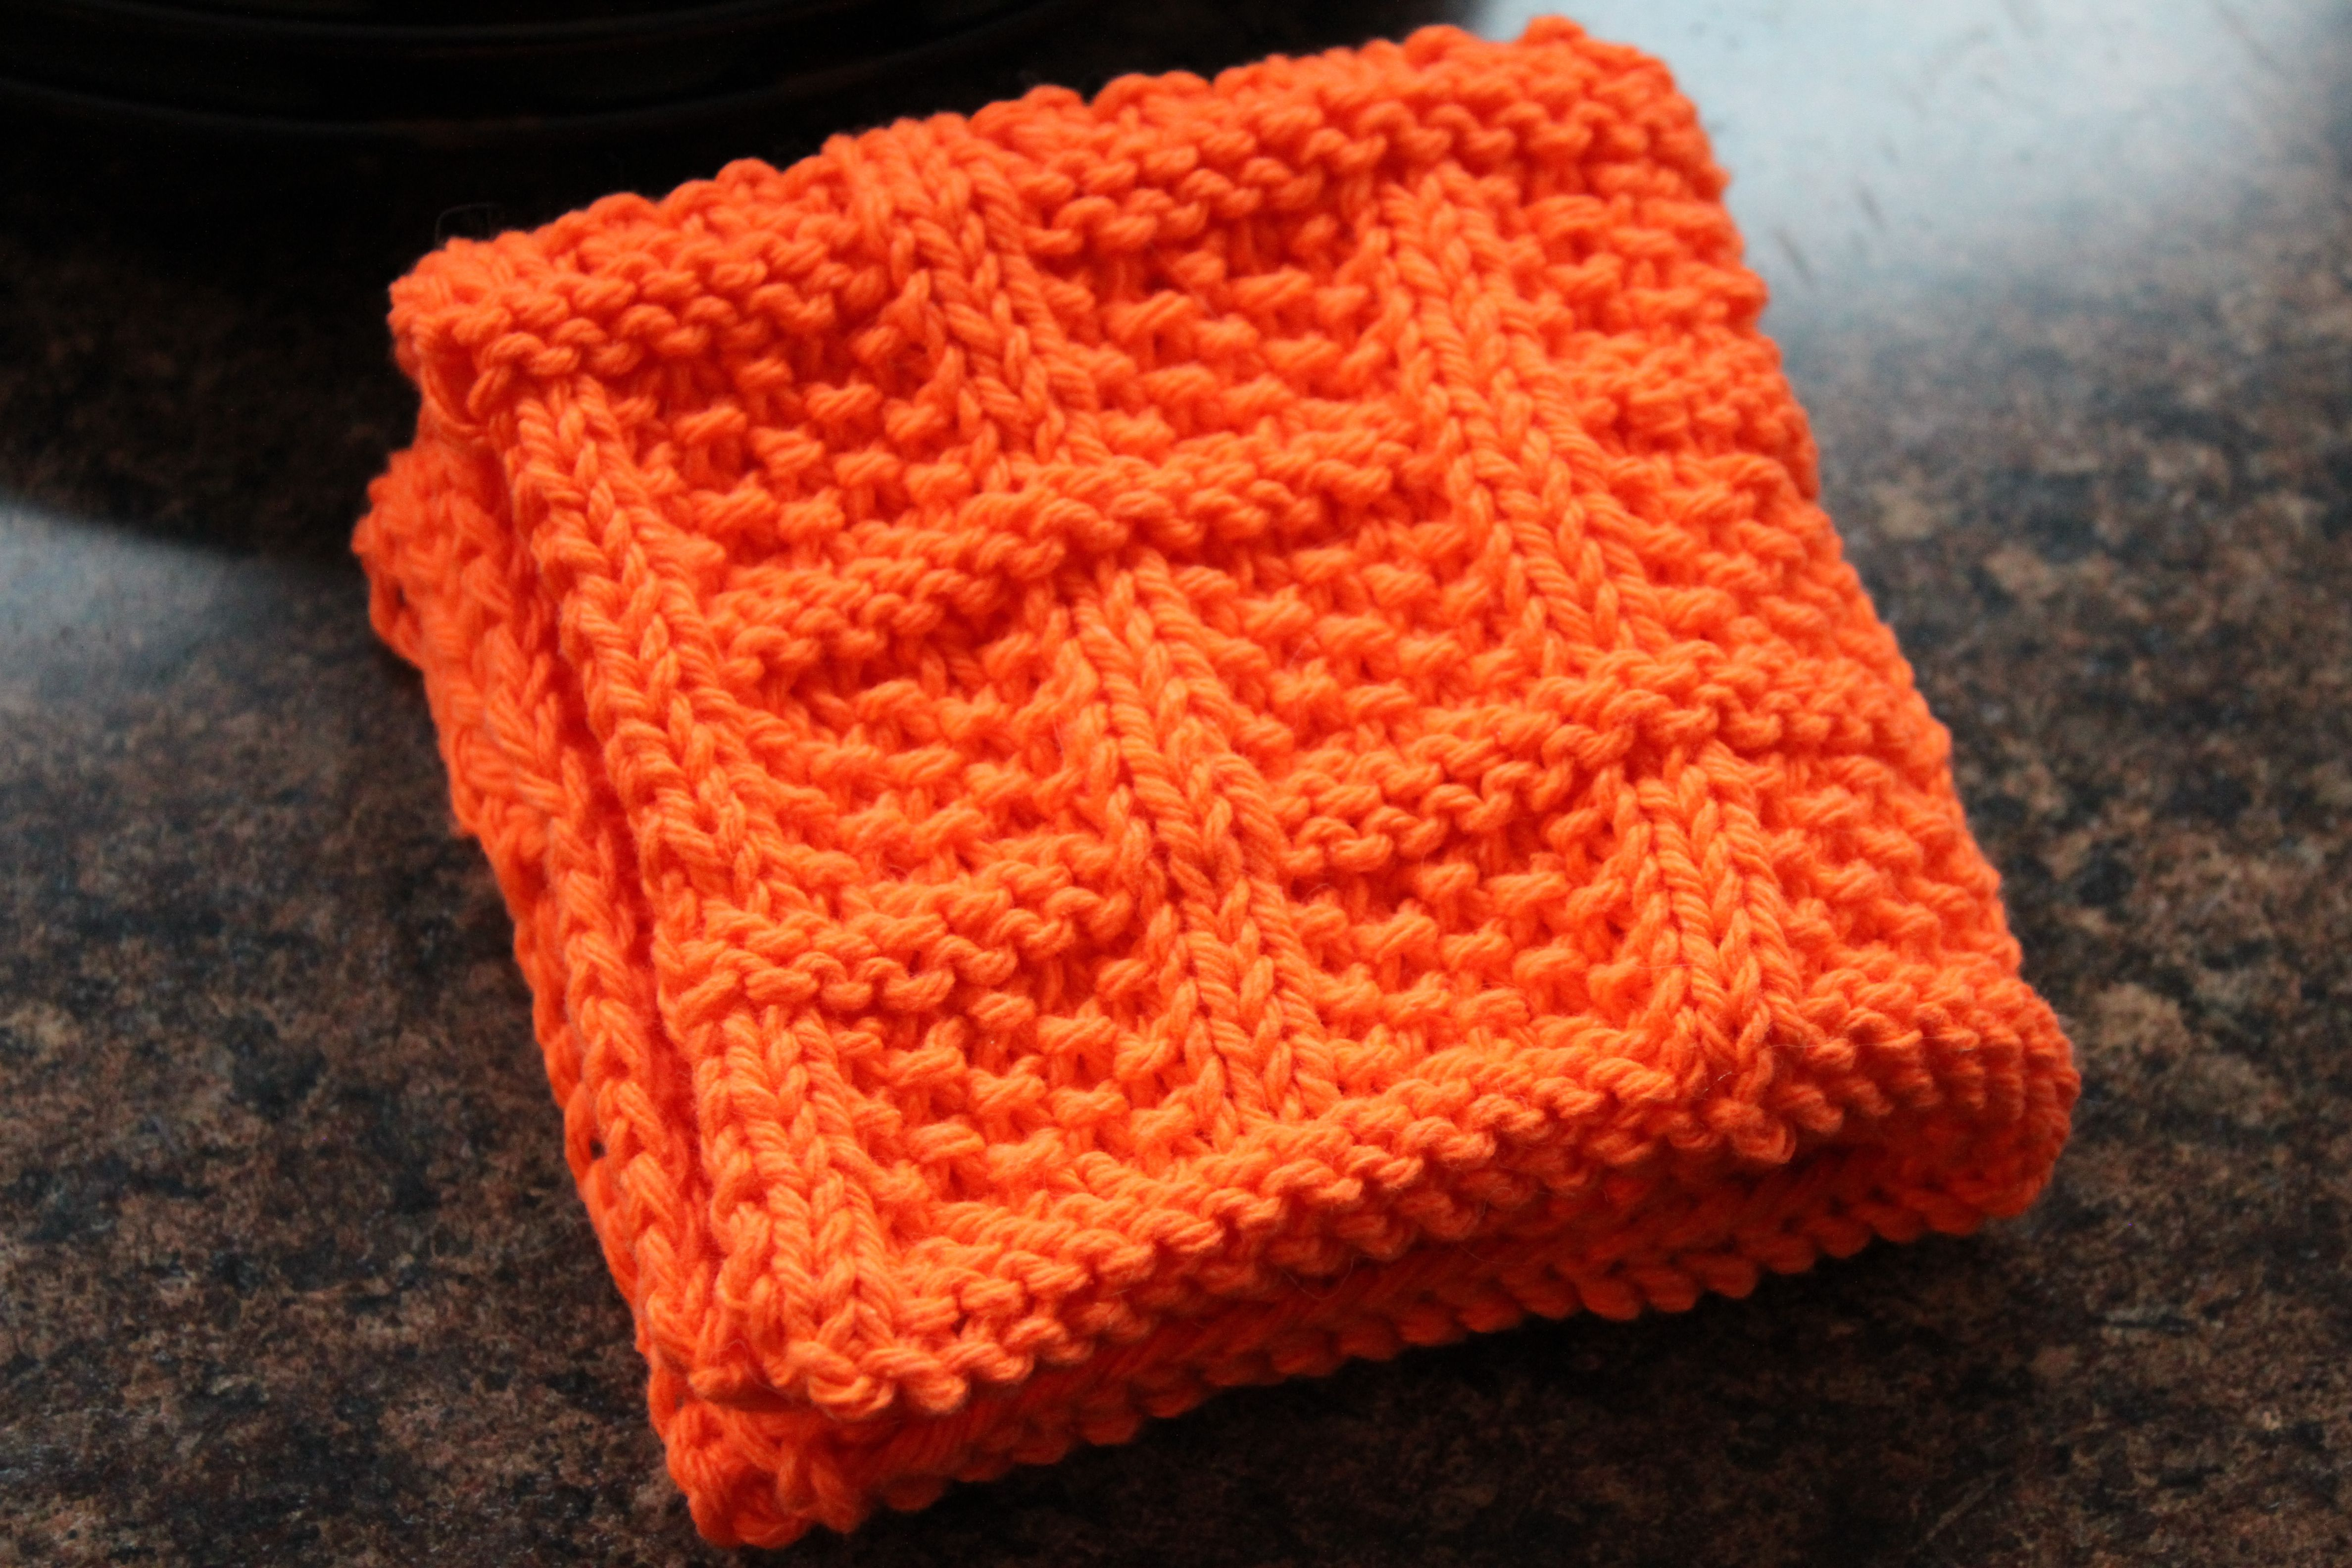 Square Lattice Dishcloth | Knitted dishcloth patterns, Knitted ...